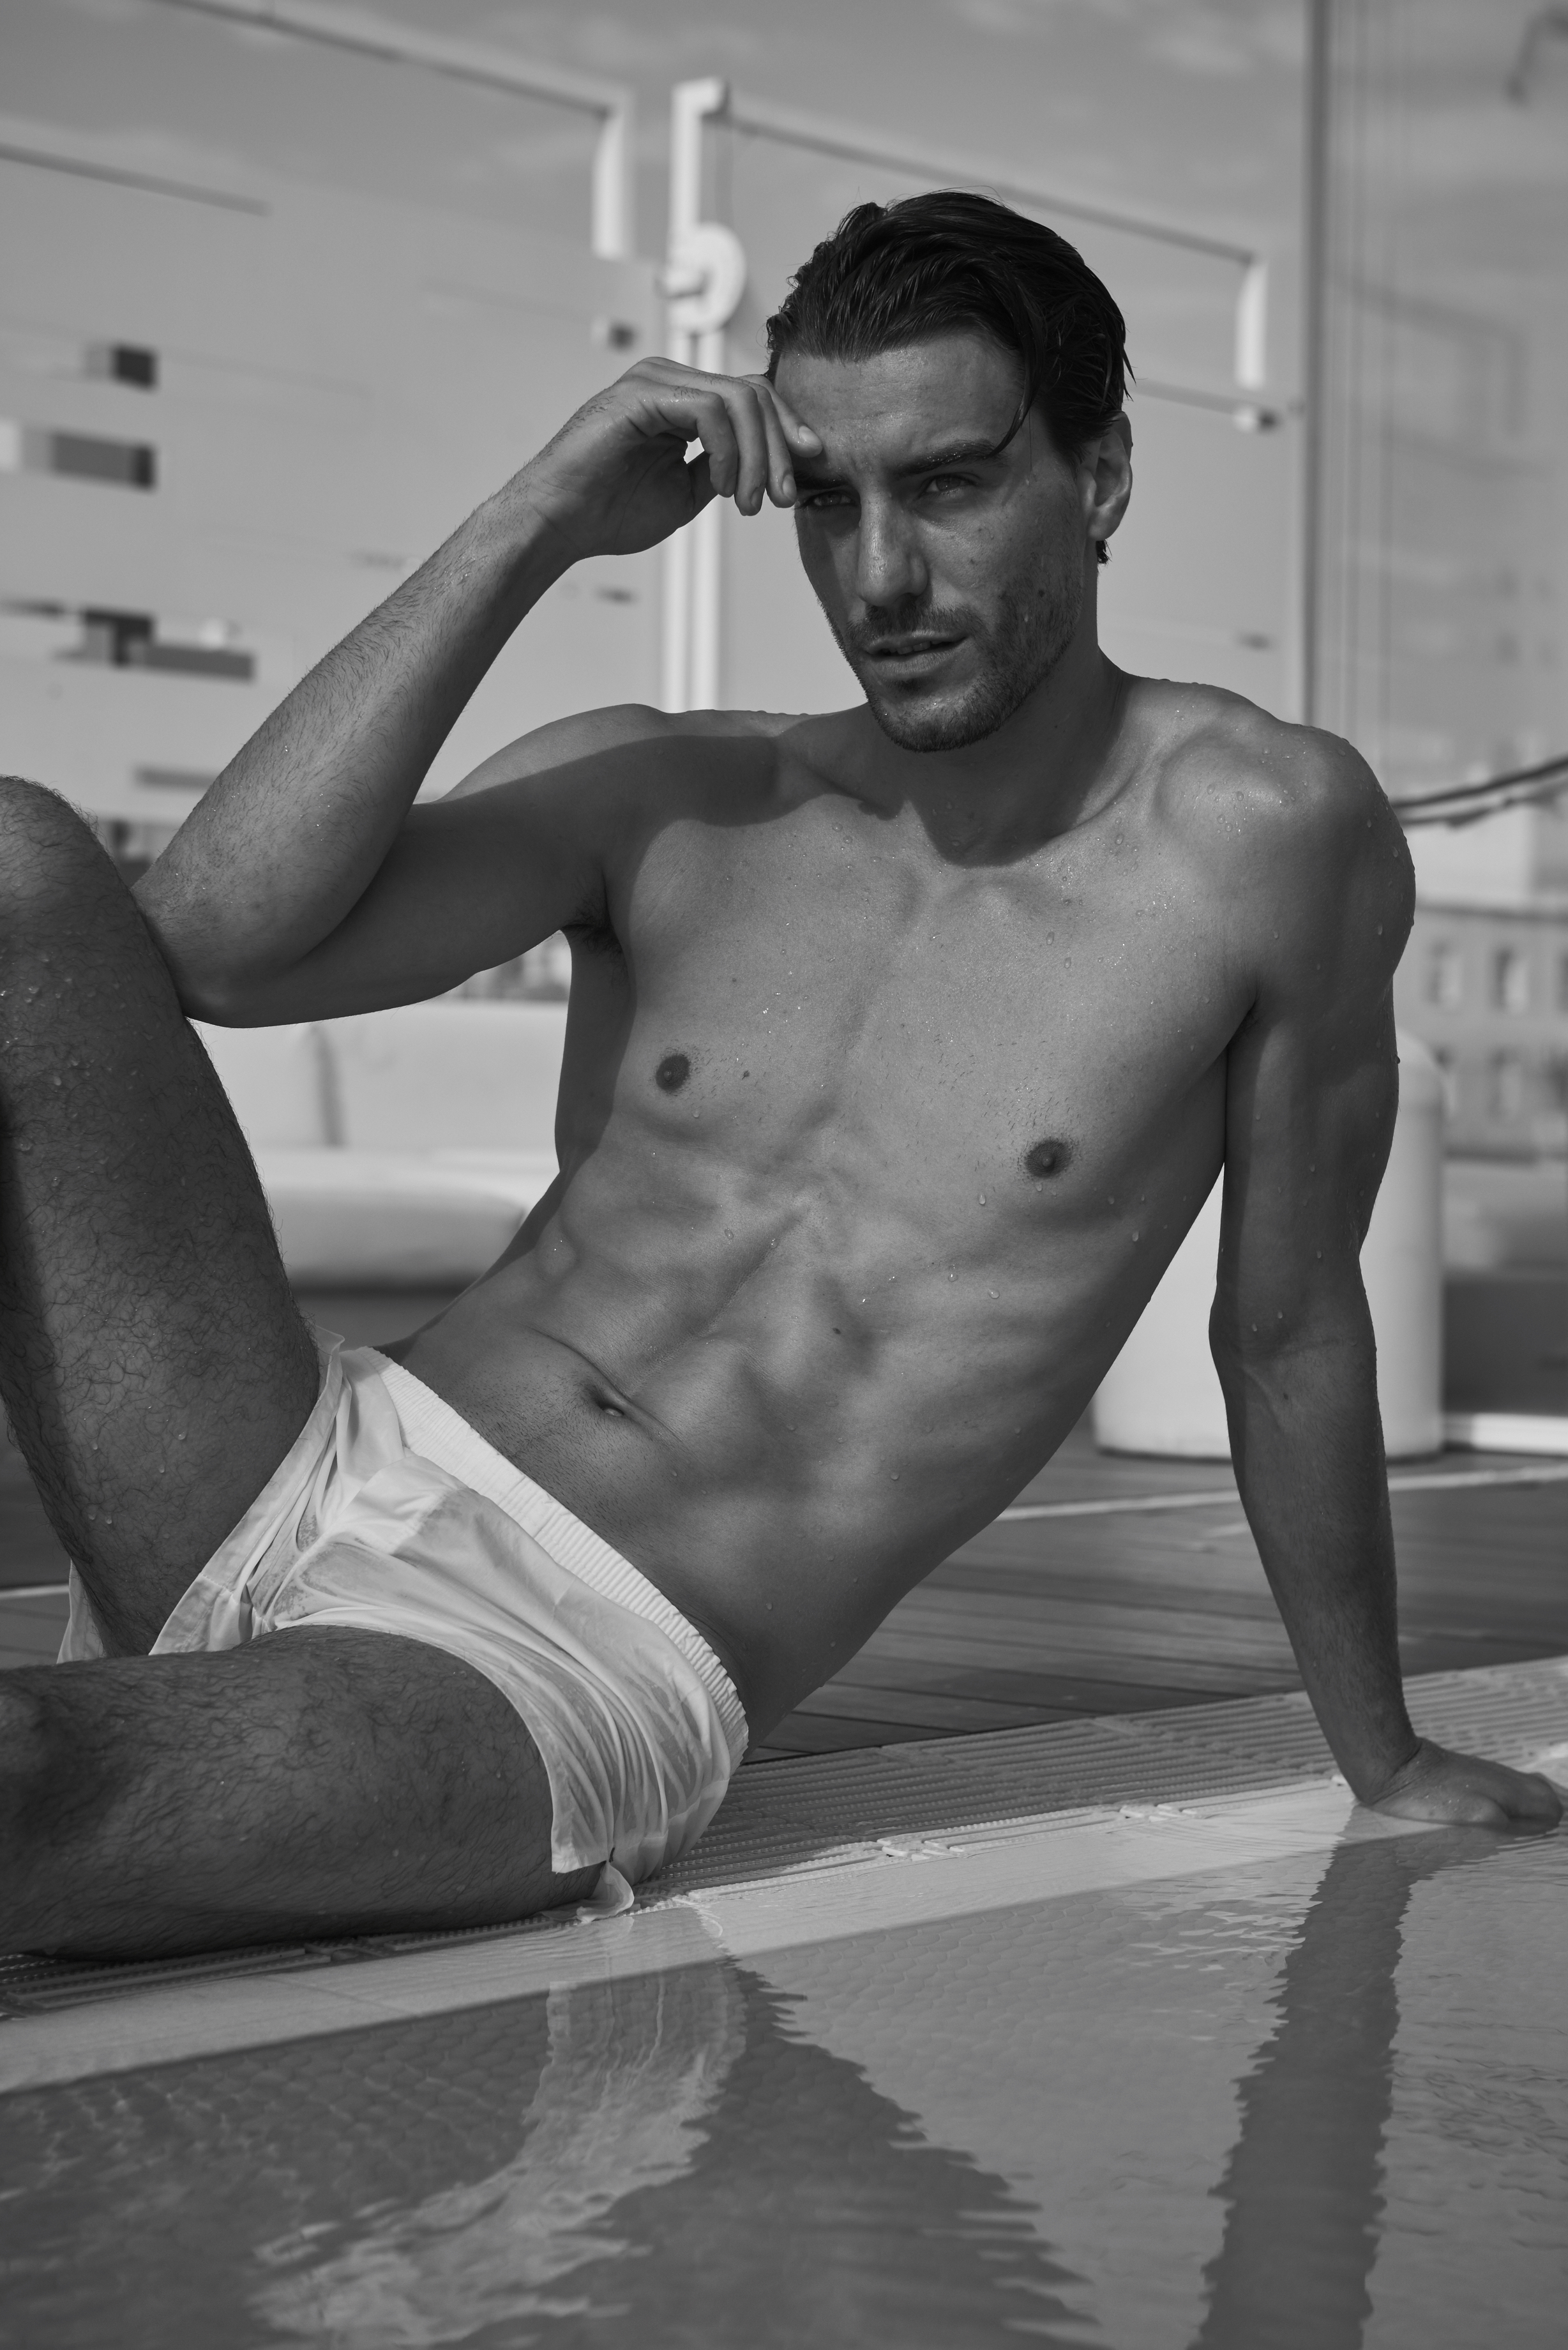 GONZALO @BLOWMODELS